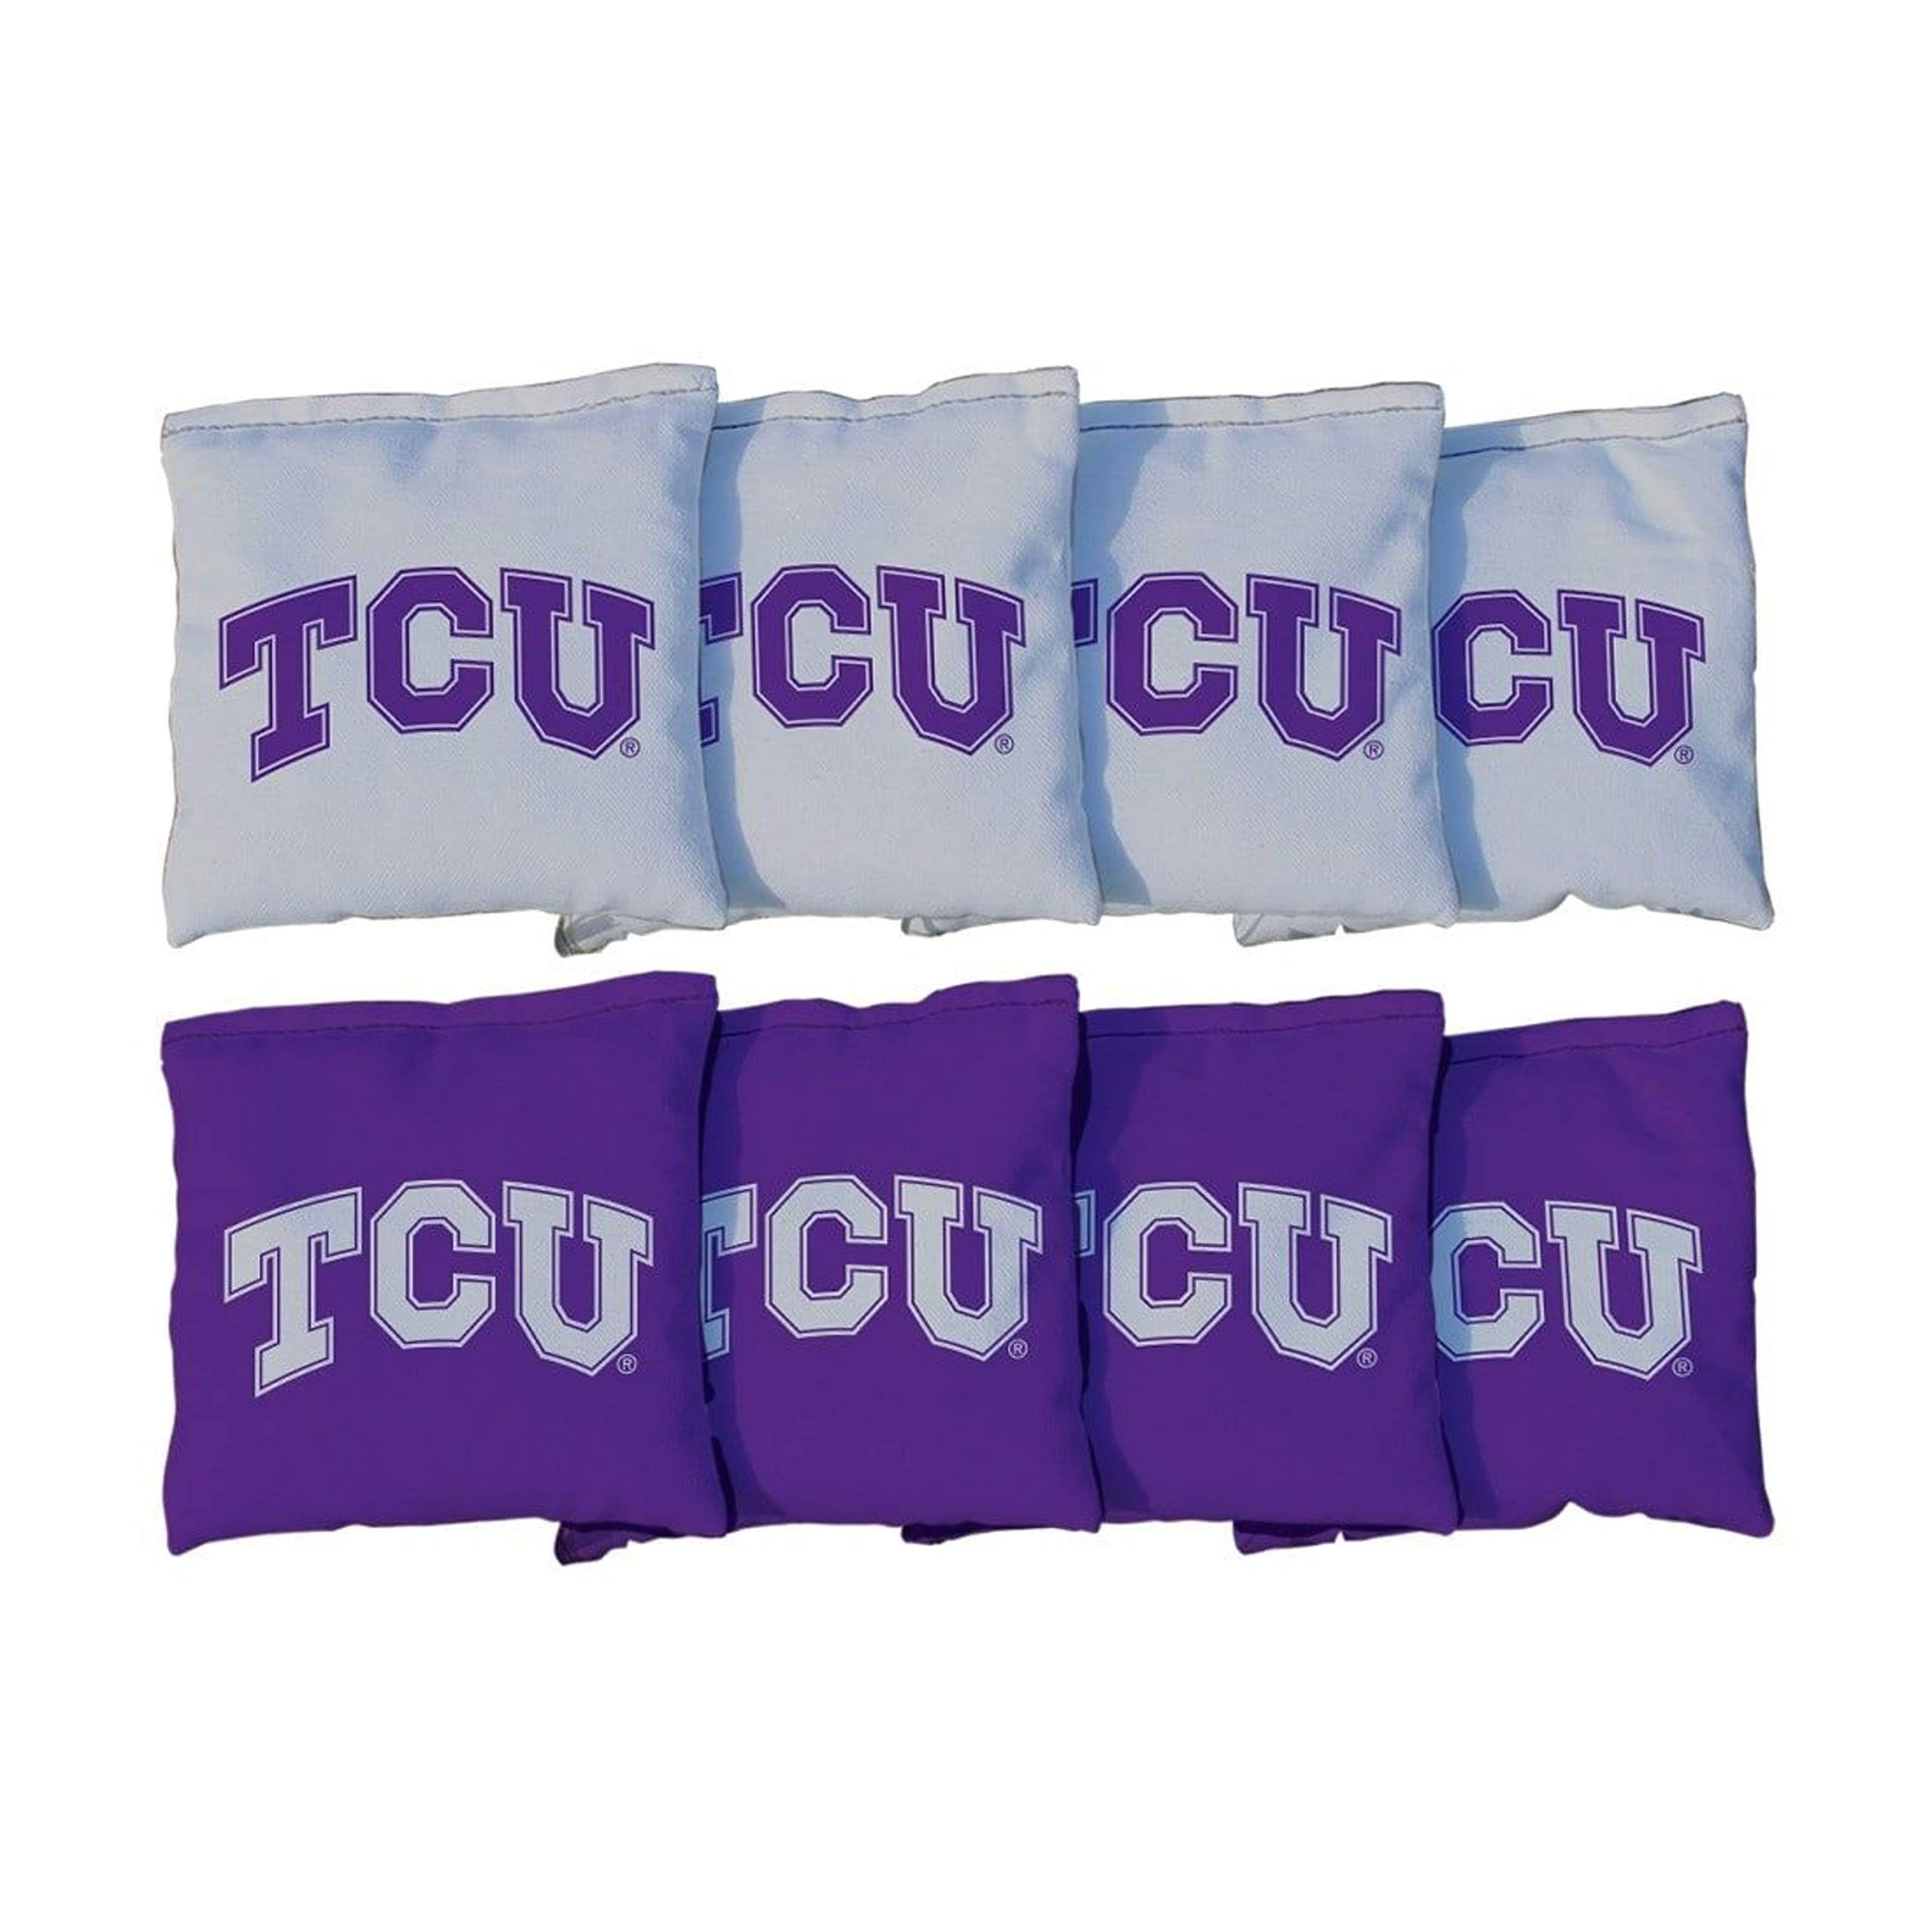 Victory Tailgate NCAA Regulation Cornhole Game Bag Set (8 Bags Included, Corn-Filled) - Texas Christian University Horned Frogs by Victory Tailgate (Image #1)